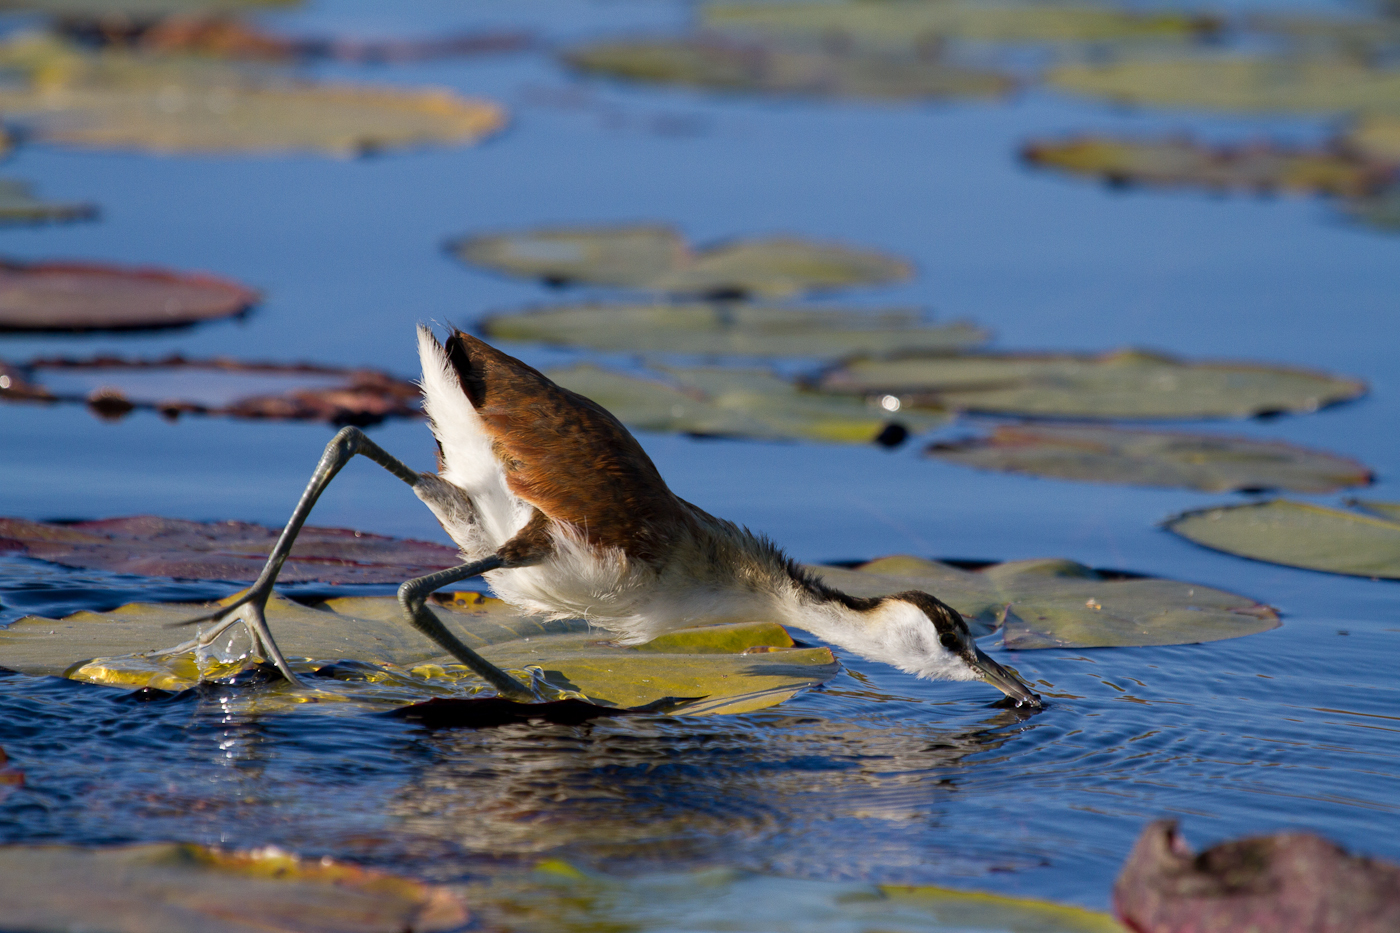 A Lesser Jacana searches for food